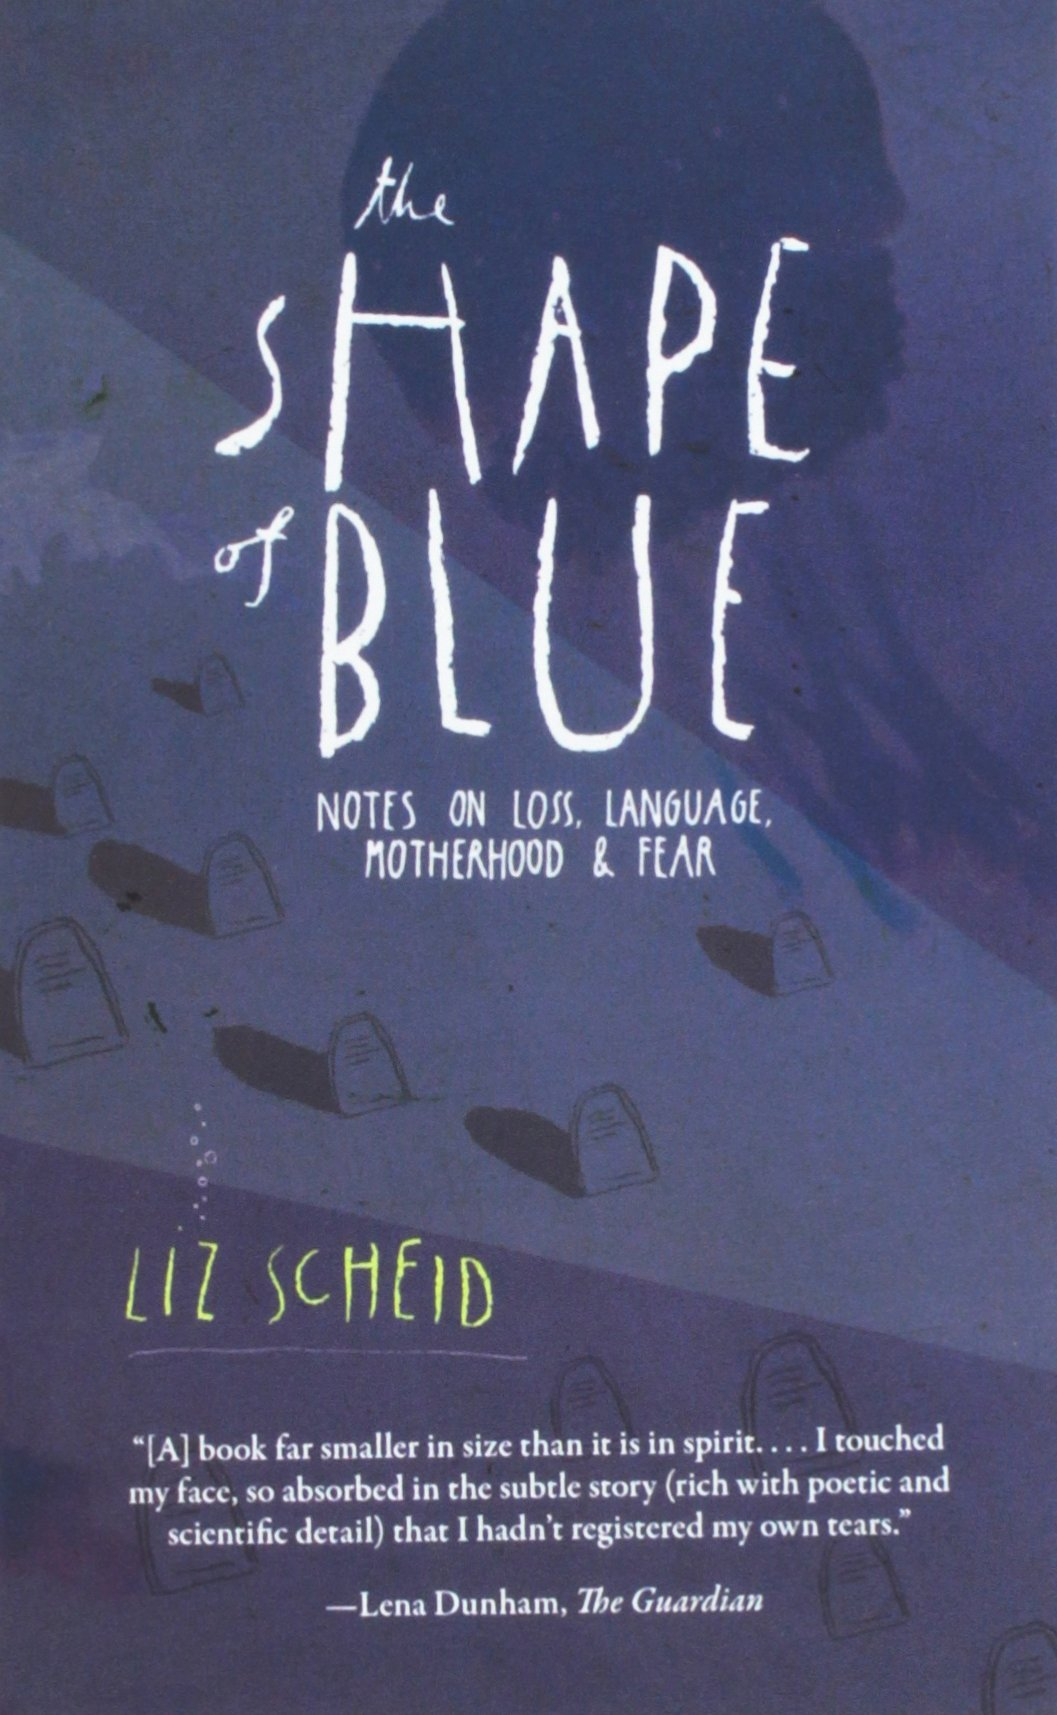 The Shape of Blue: Notes on Loss, Language, Motherhood & Fear by The Lit Pub, LLC